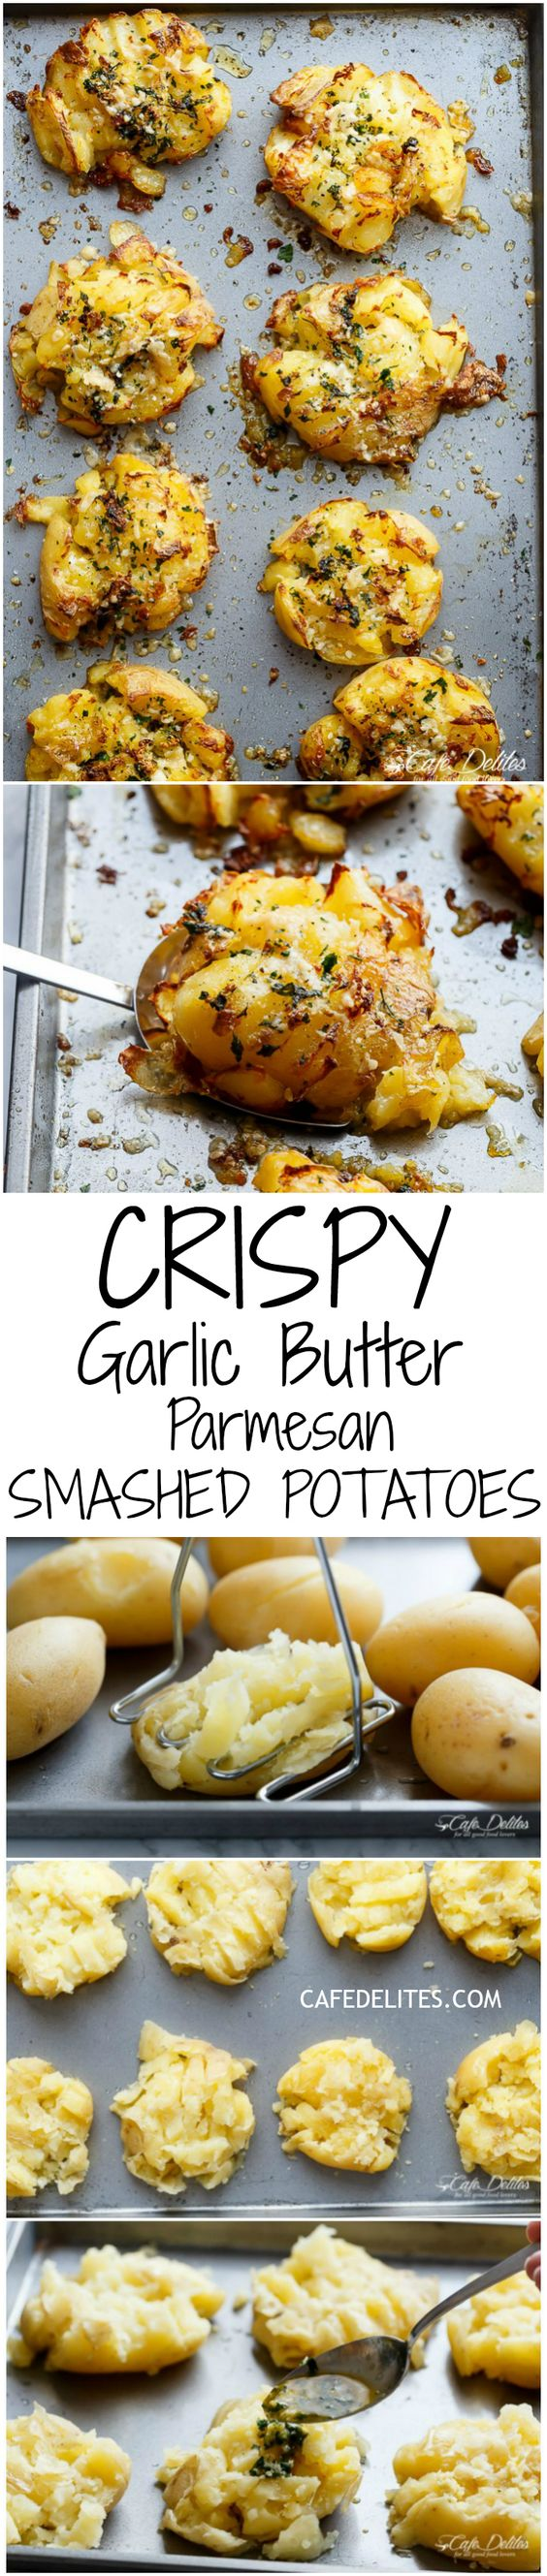 Crispy Garlic Butter Parmesan Smashed Potatoes are fluffy on the inside and crispy on the outside, smothered in garlic butter and parmesan cheese! | http://cafedelites.com: